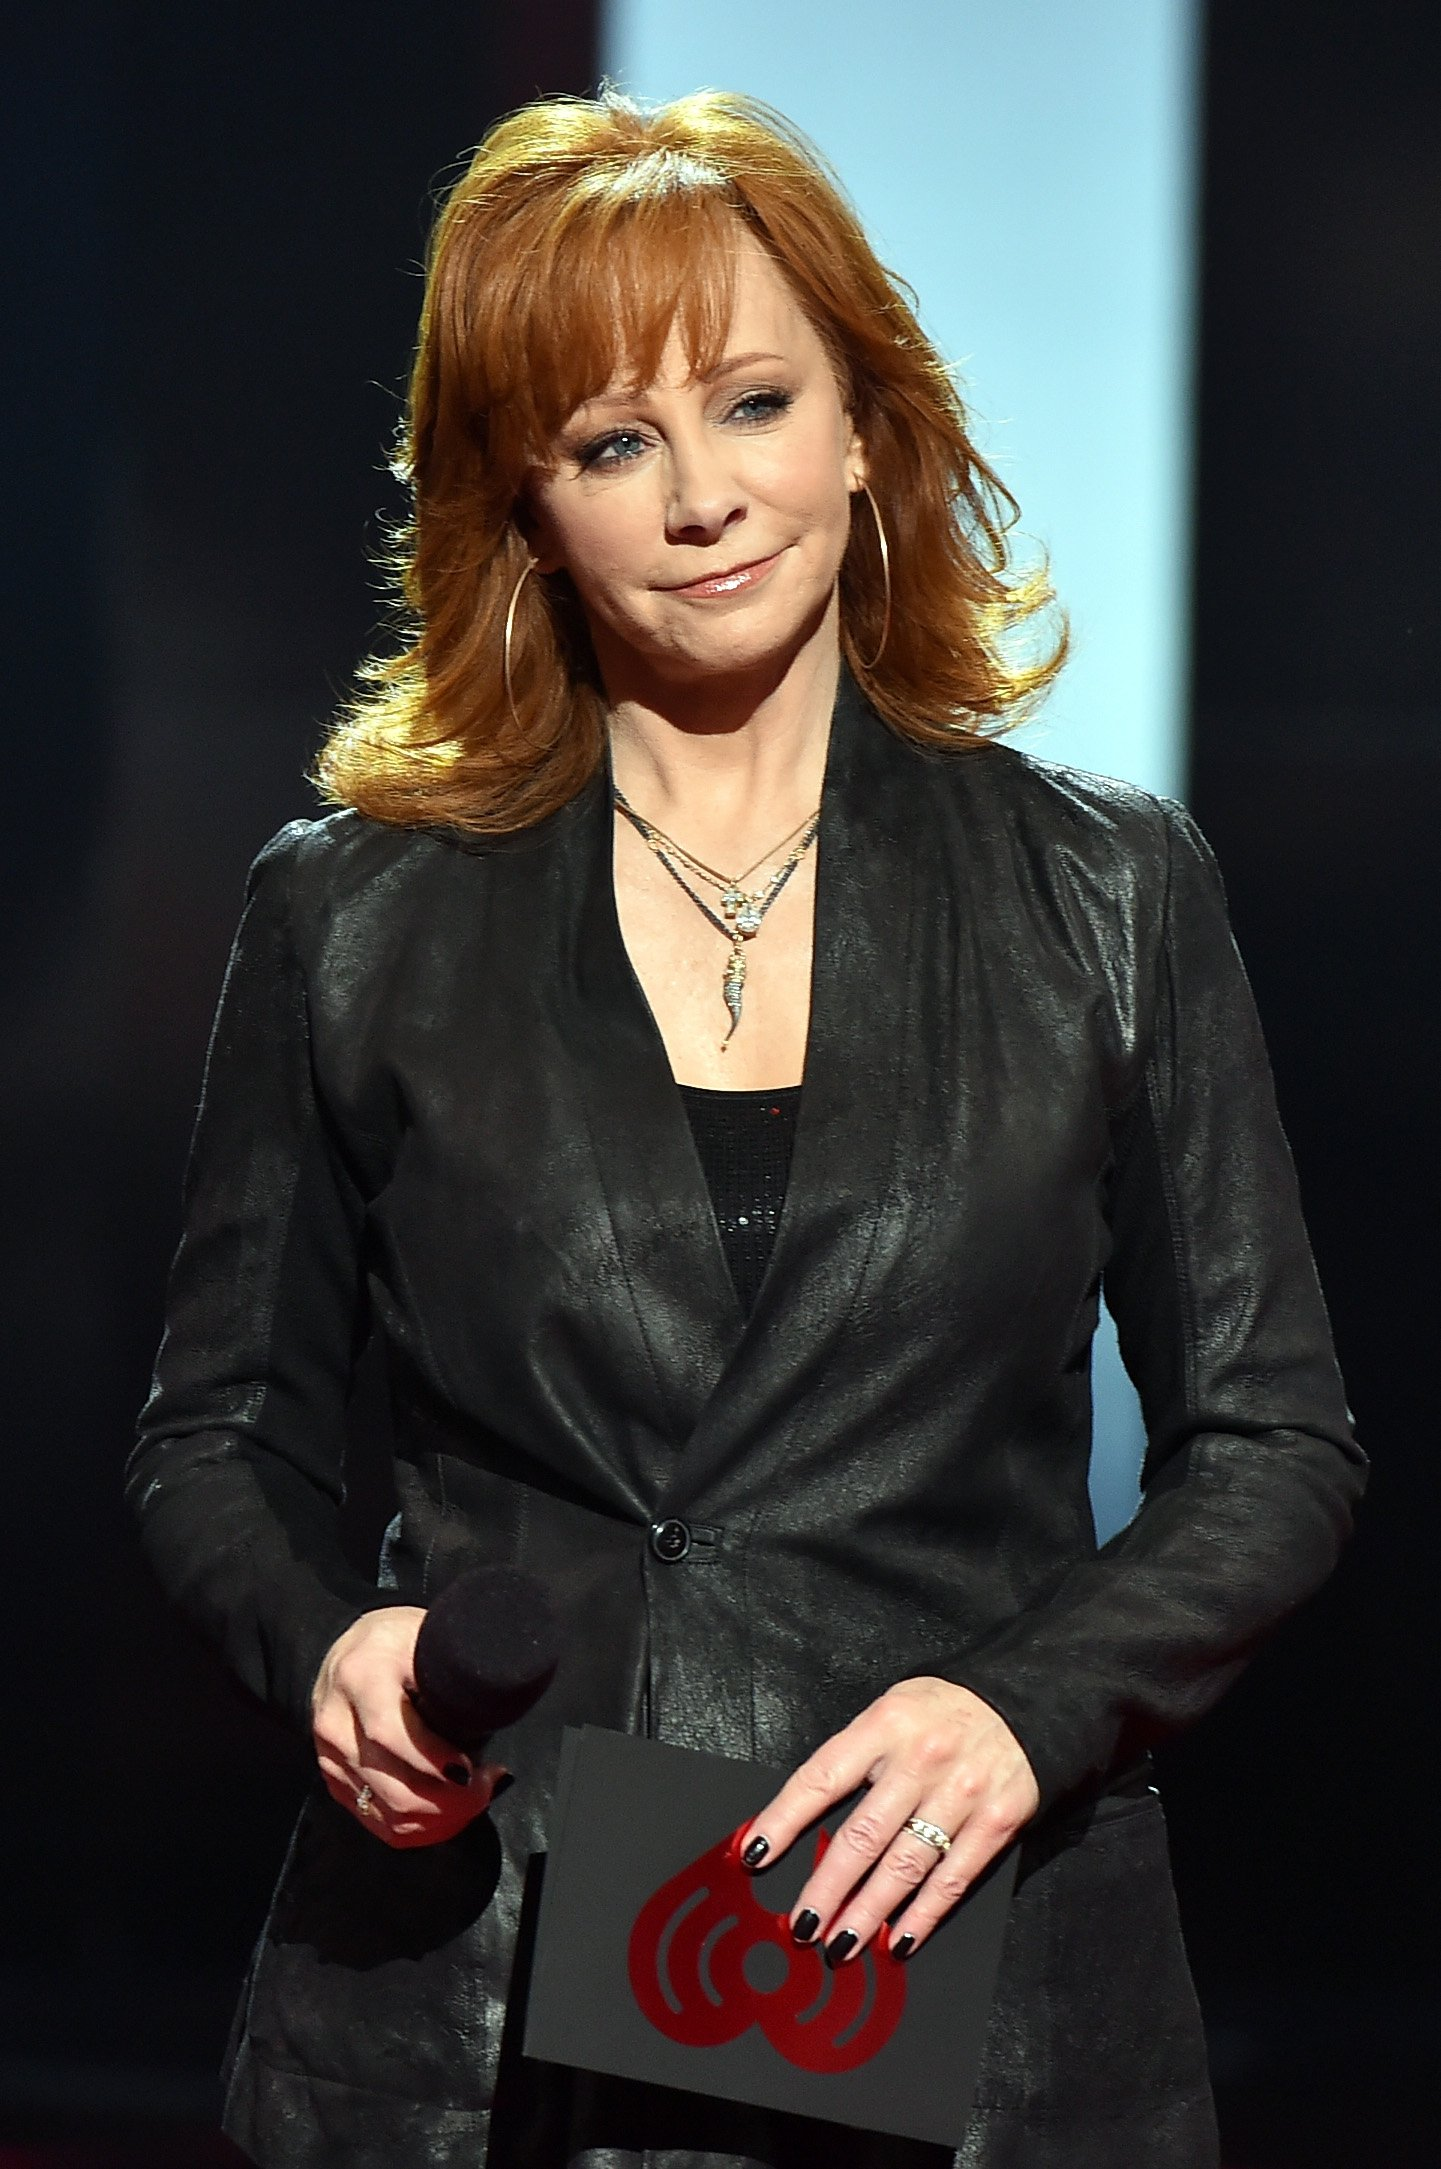 Reba McEntire speaks onstage during the 2015 iHeartRadio Music Awards. | Photo: Getty Images